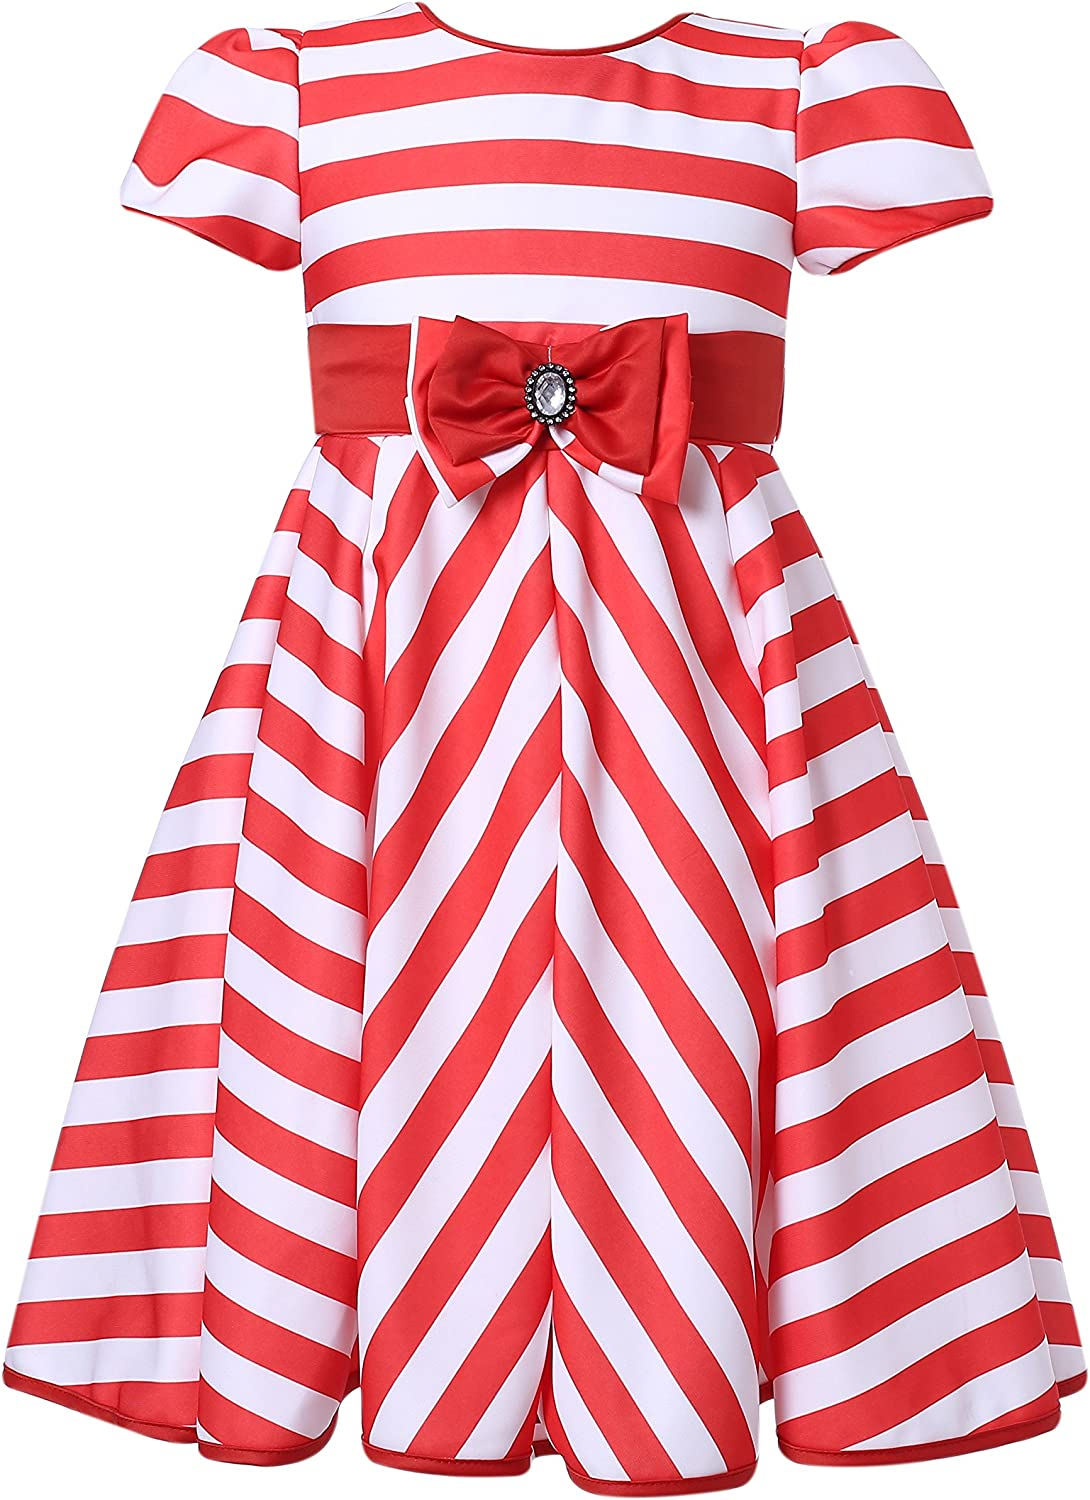 Richie House Girls' Columbus Mall Striped Party Max 89% OFF Size 3-12Y RH2226 Dress